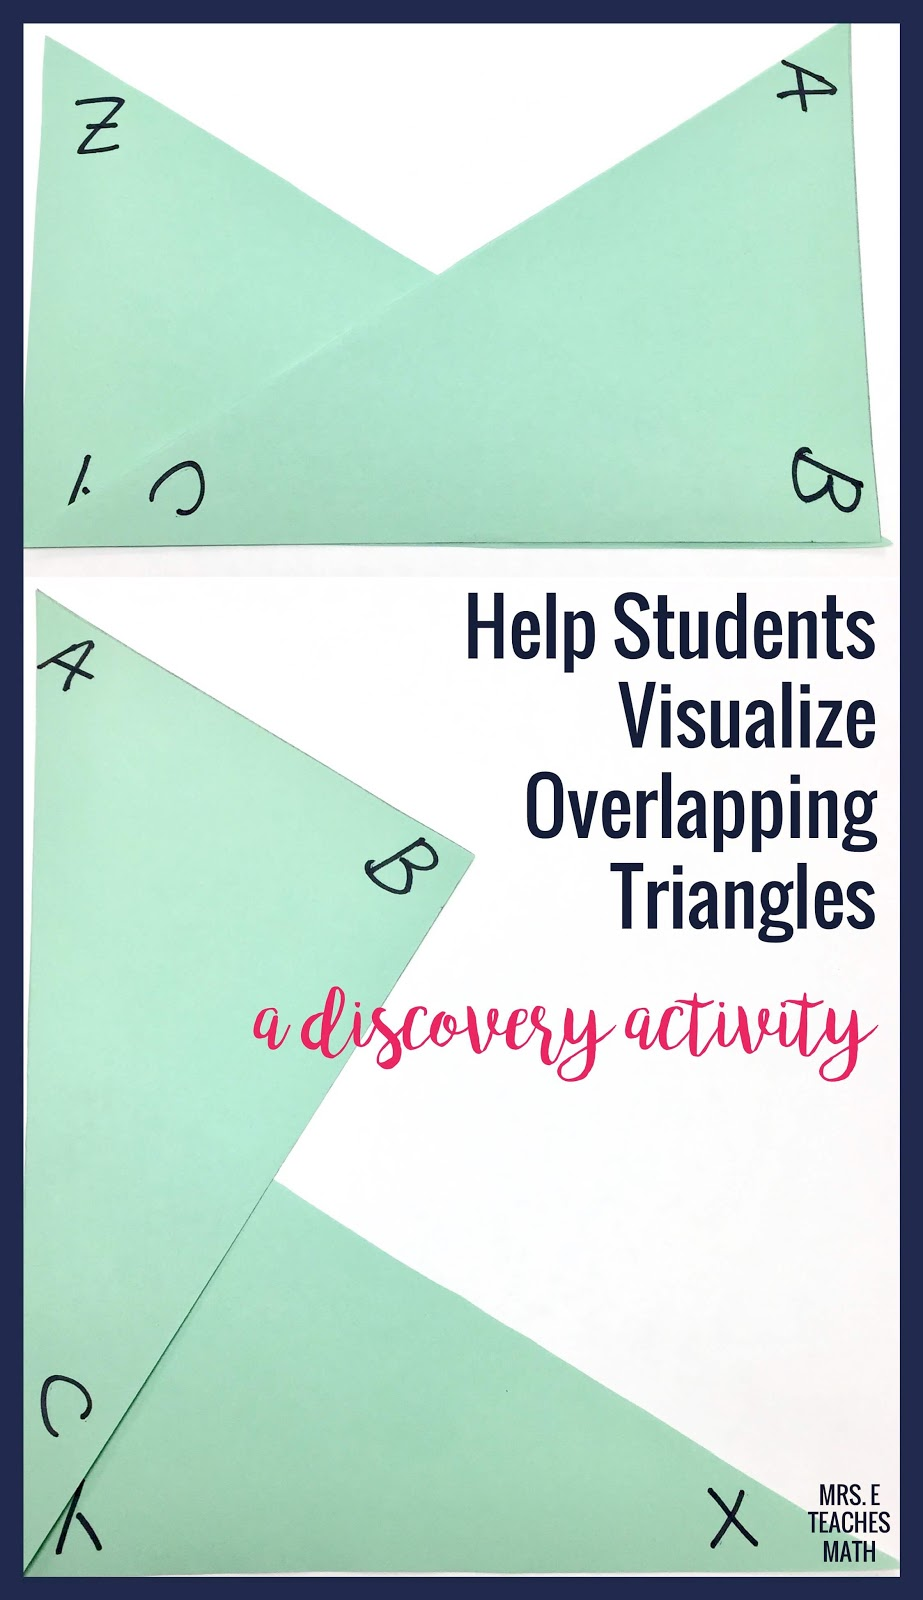 Help Students Visualize Overlapping Triangles